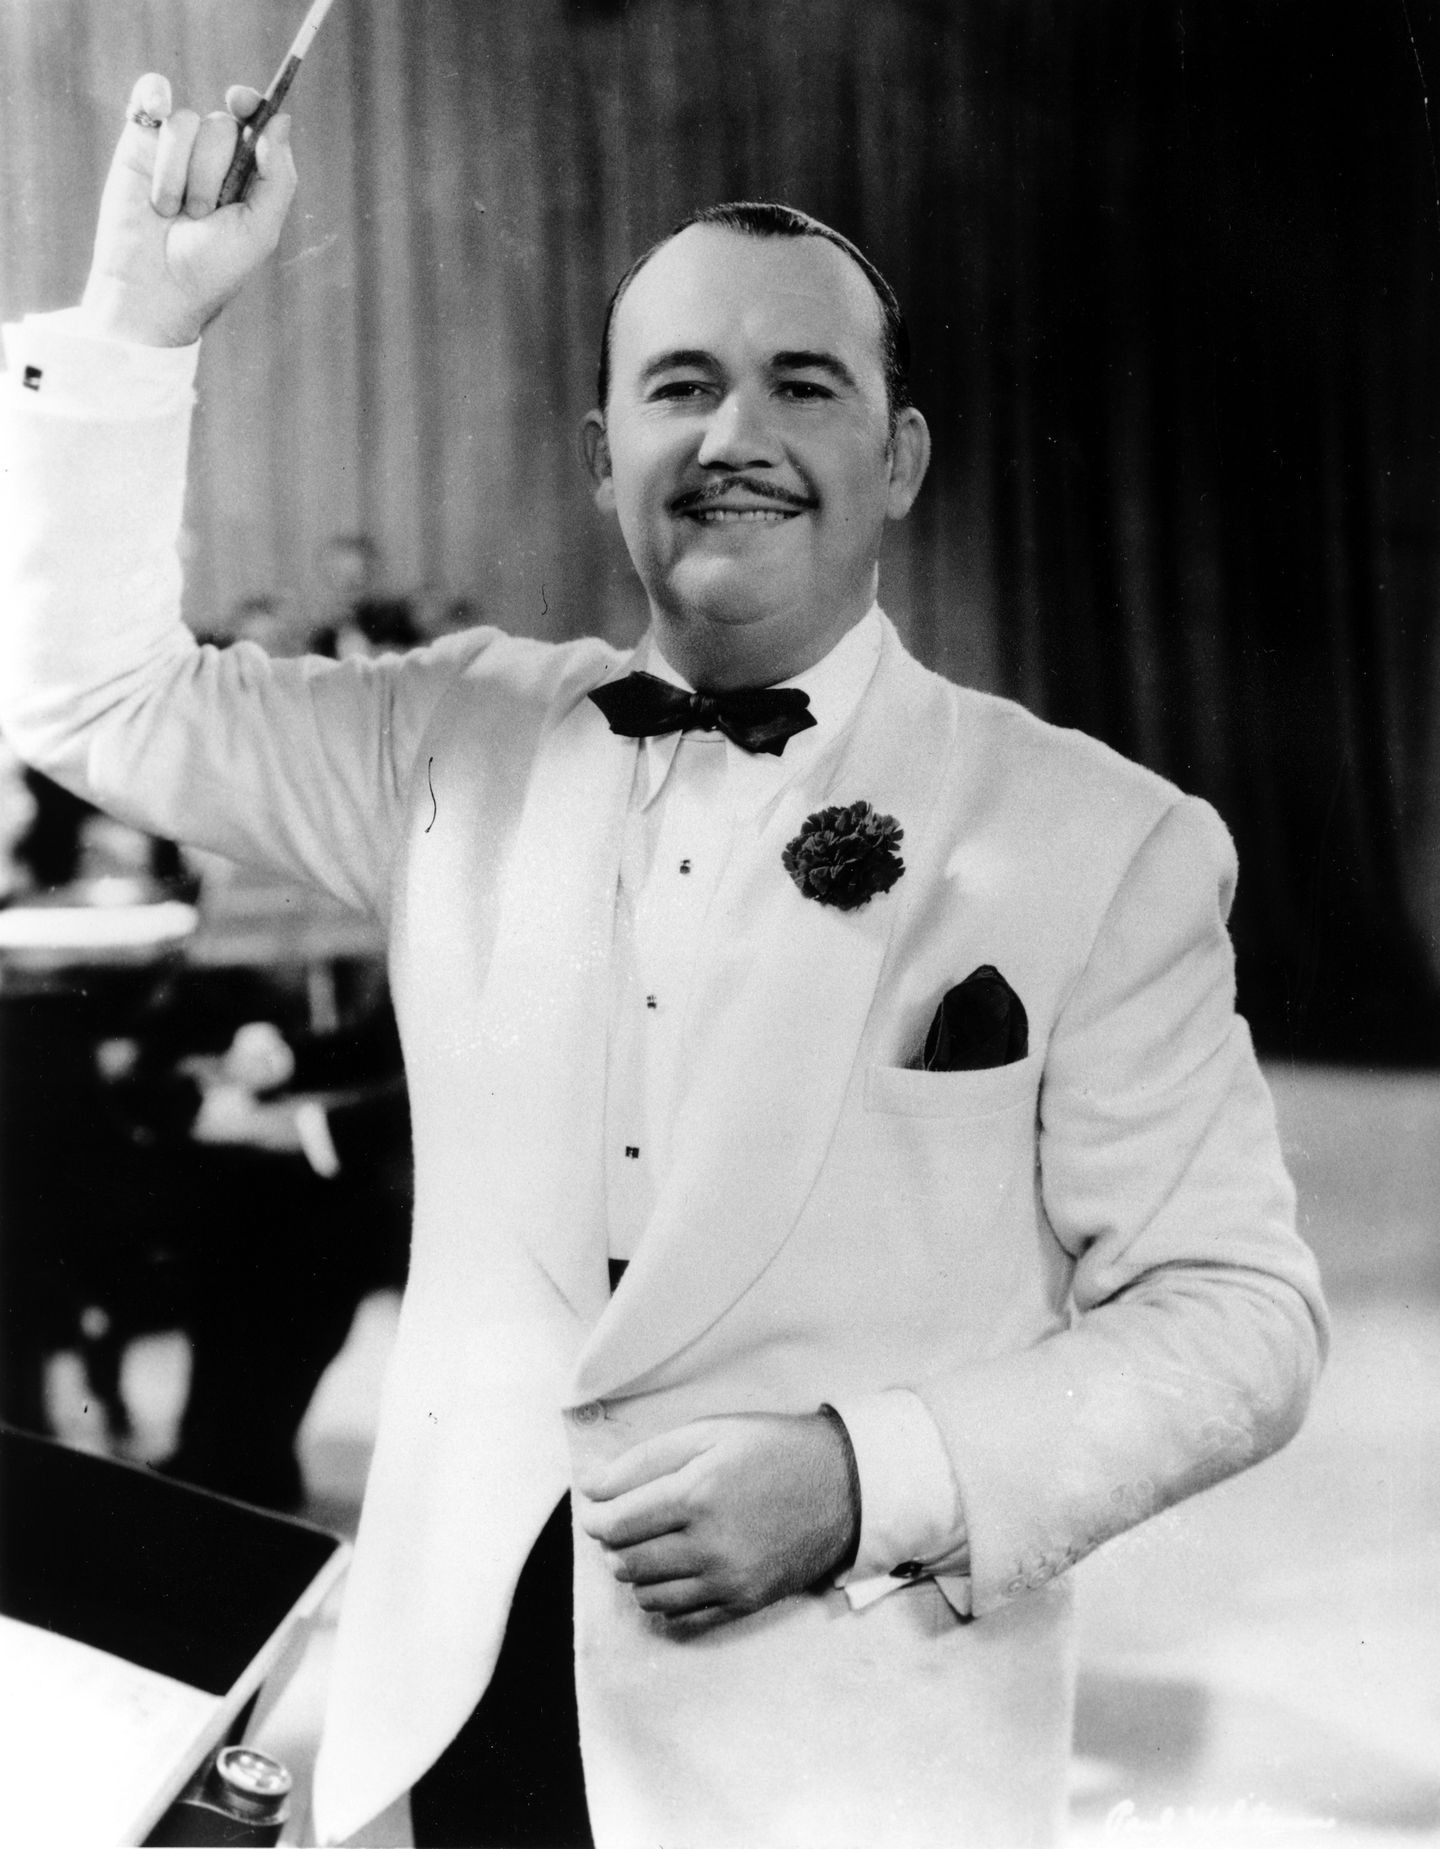 Paul Whiteman was considered the king of jazz